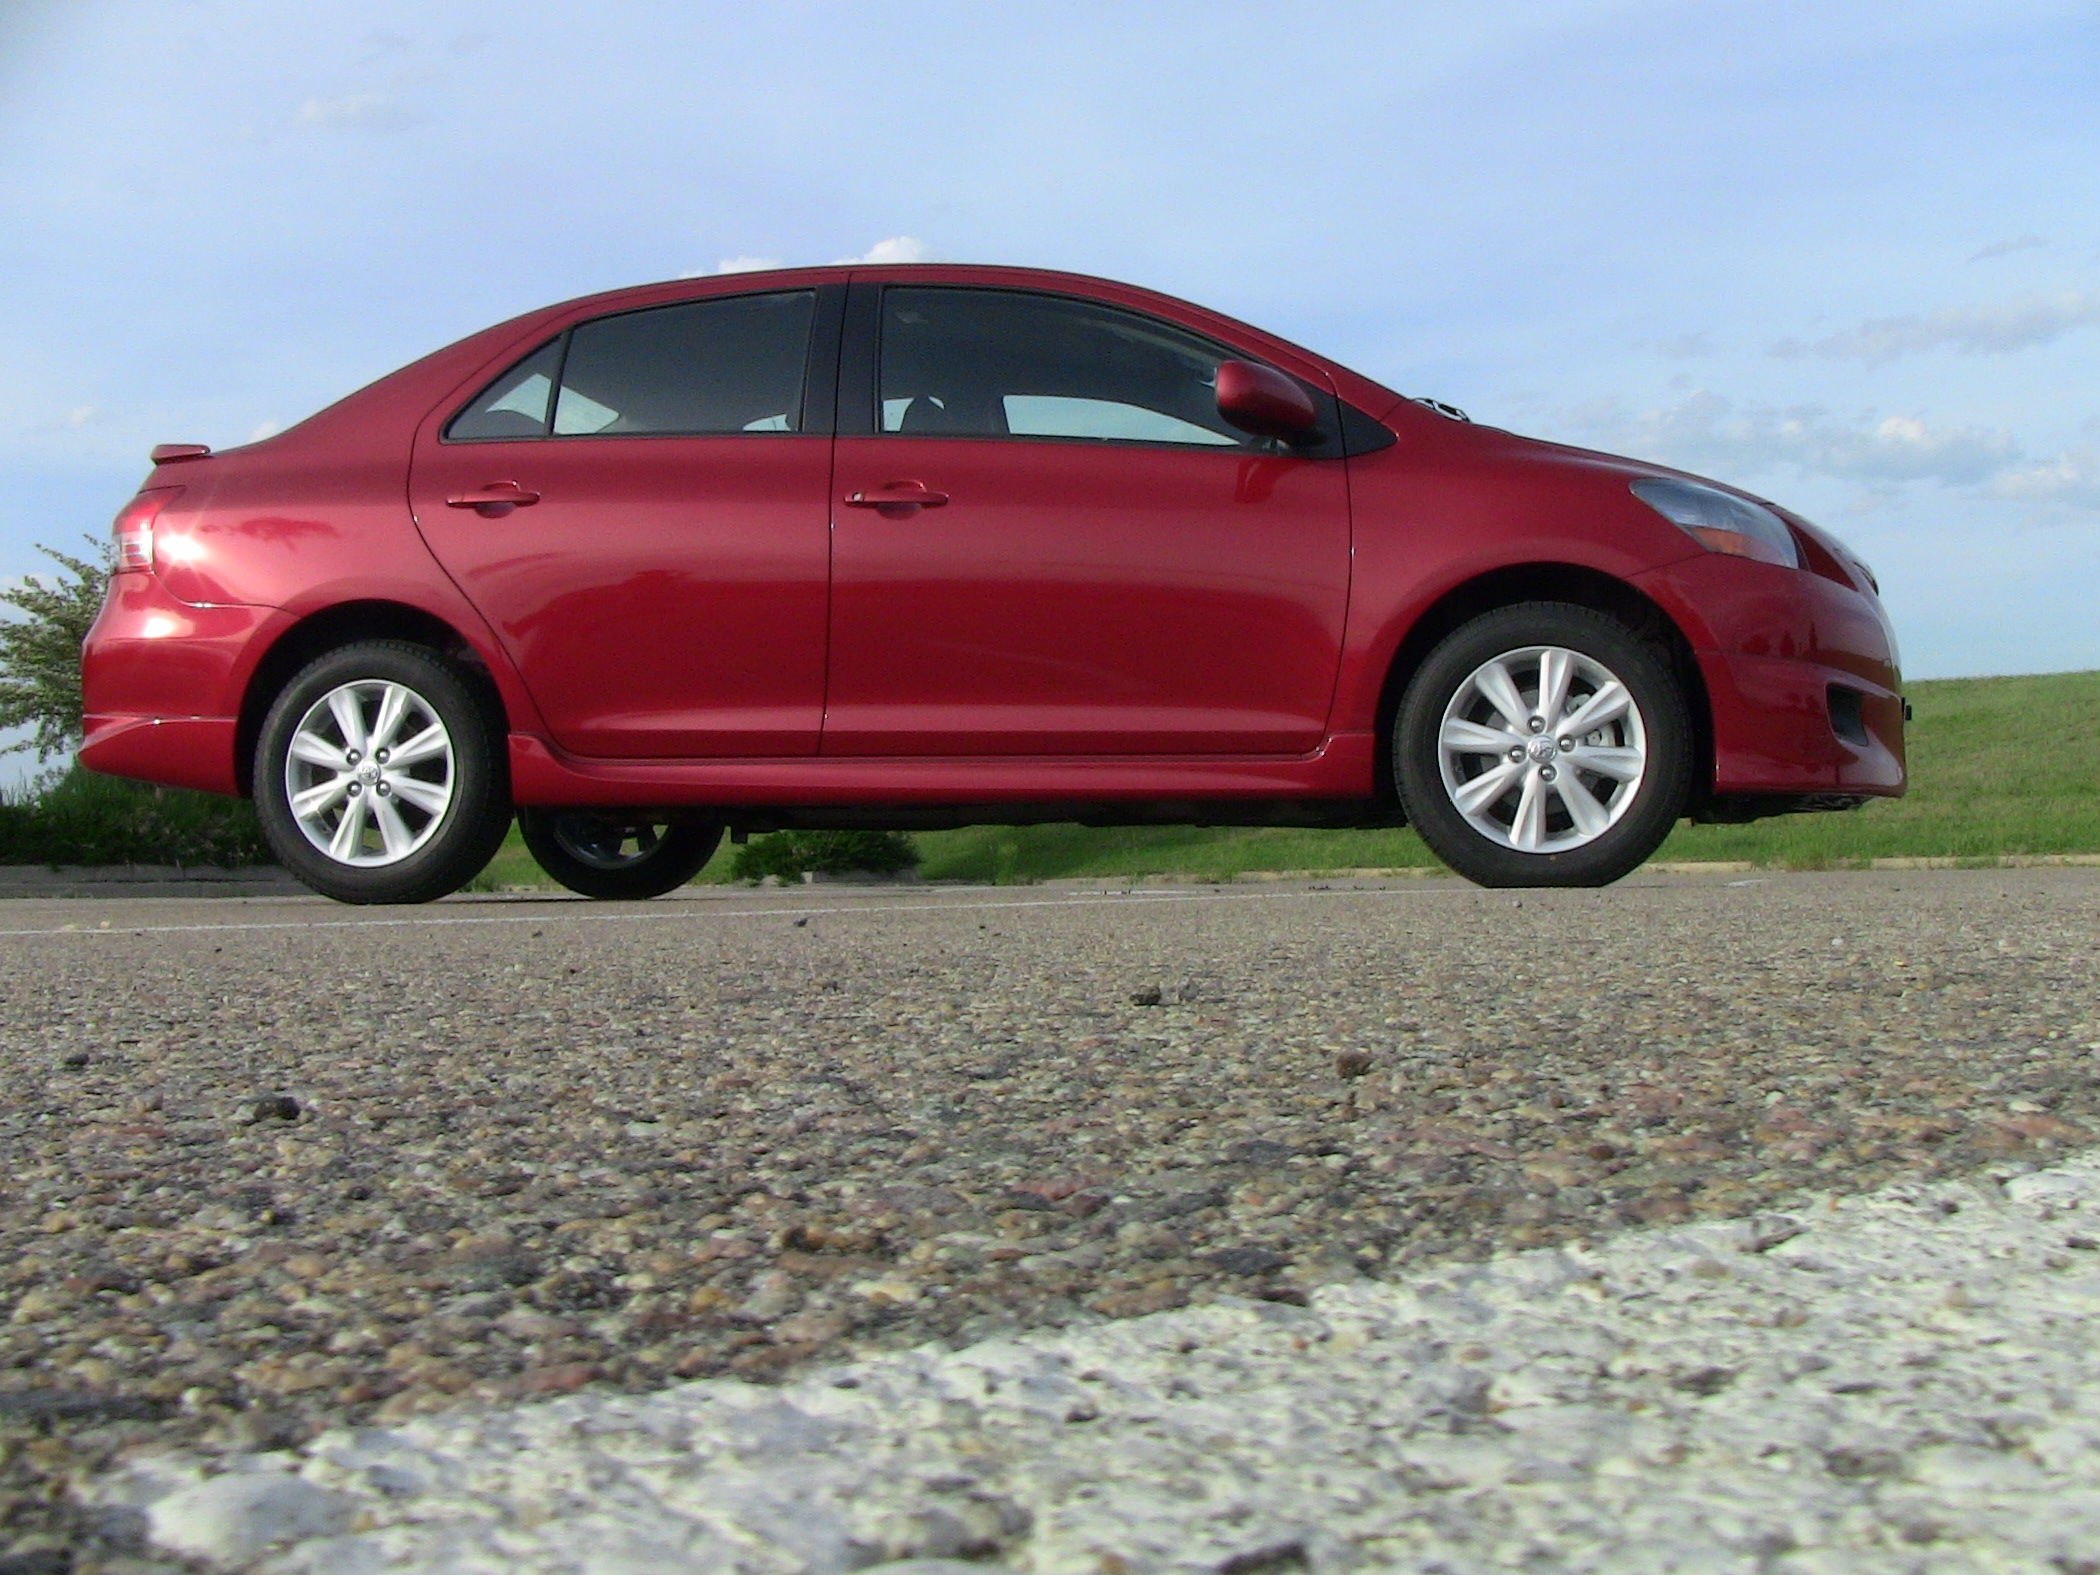 Weekly Drive: Is this 2010 Toyota Yaris the most expensive economy ...